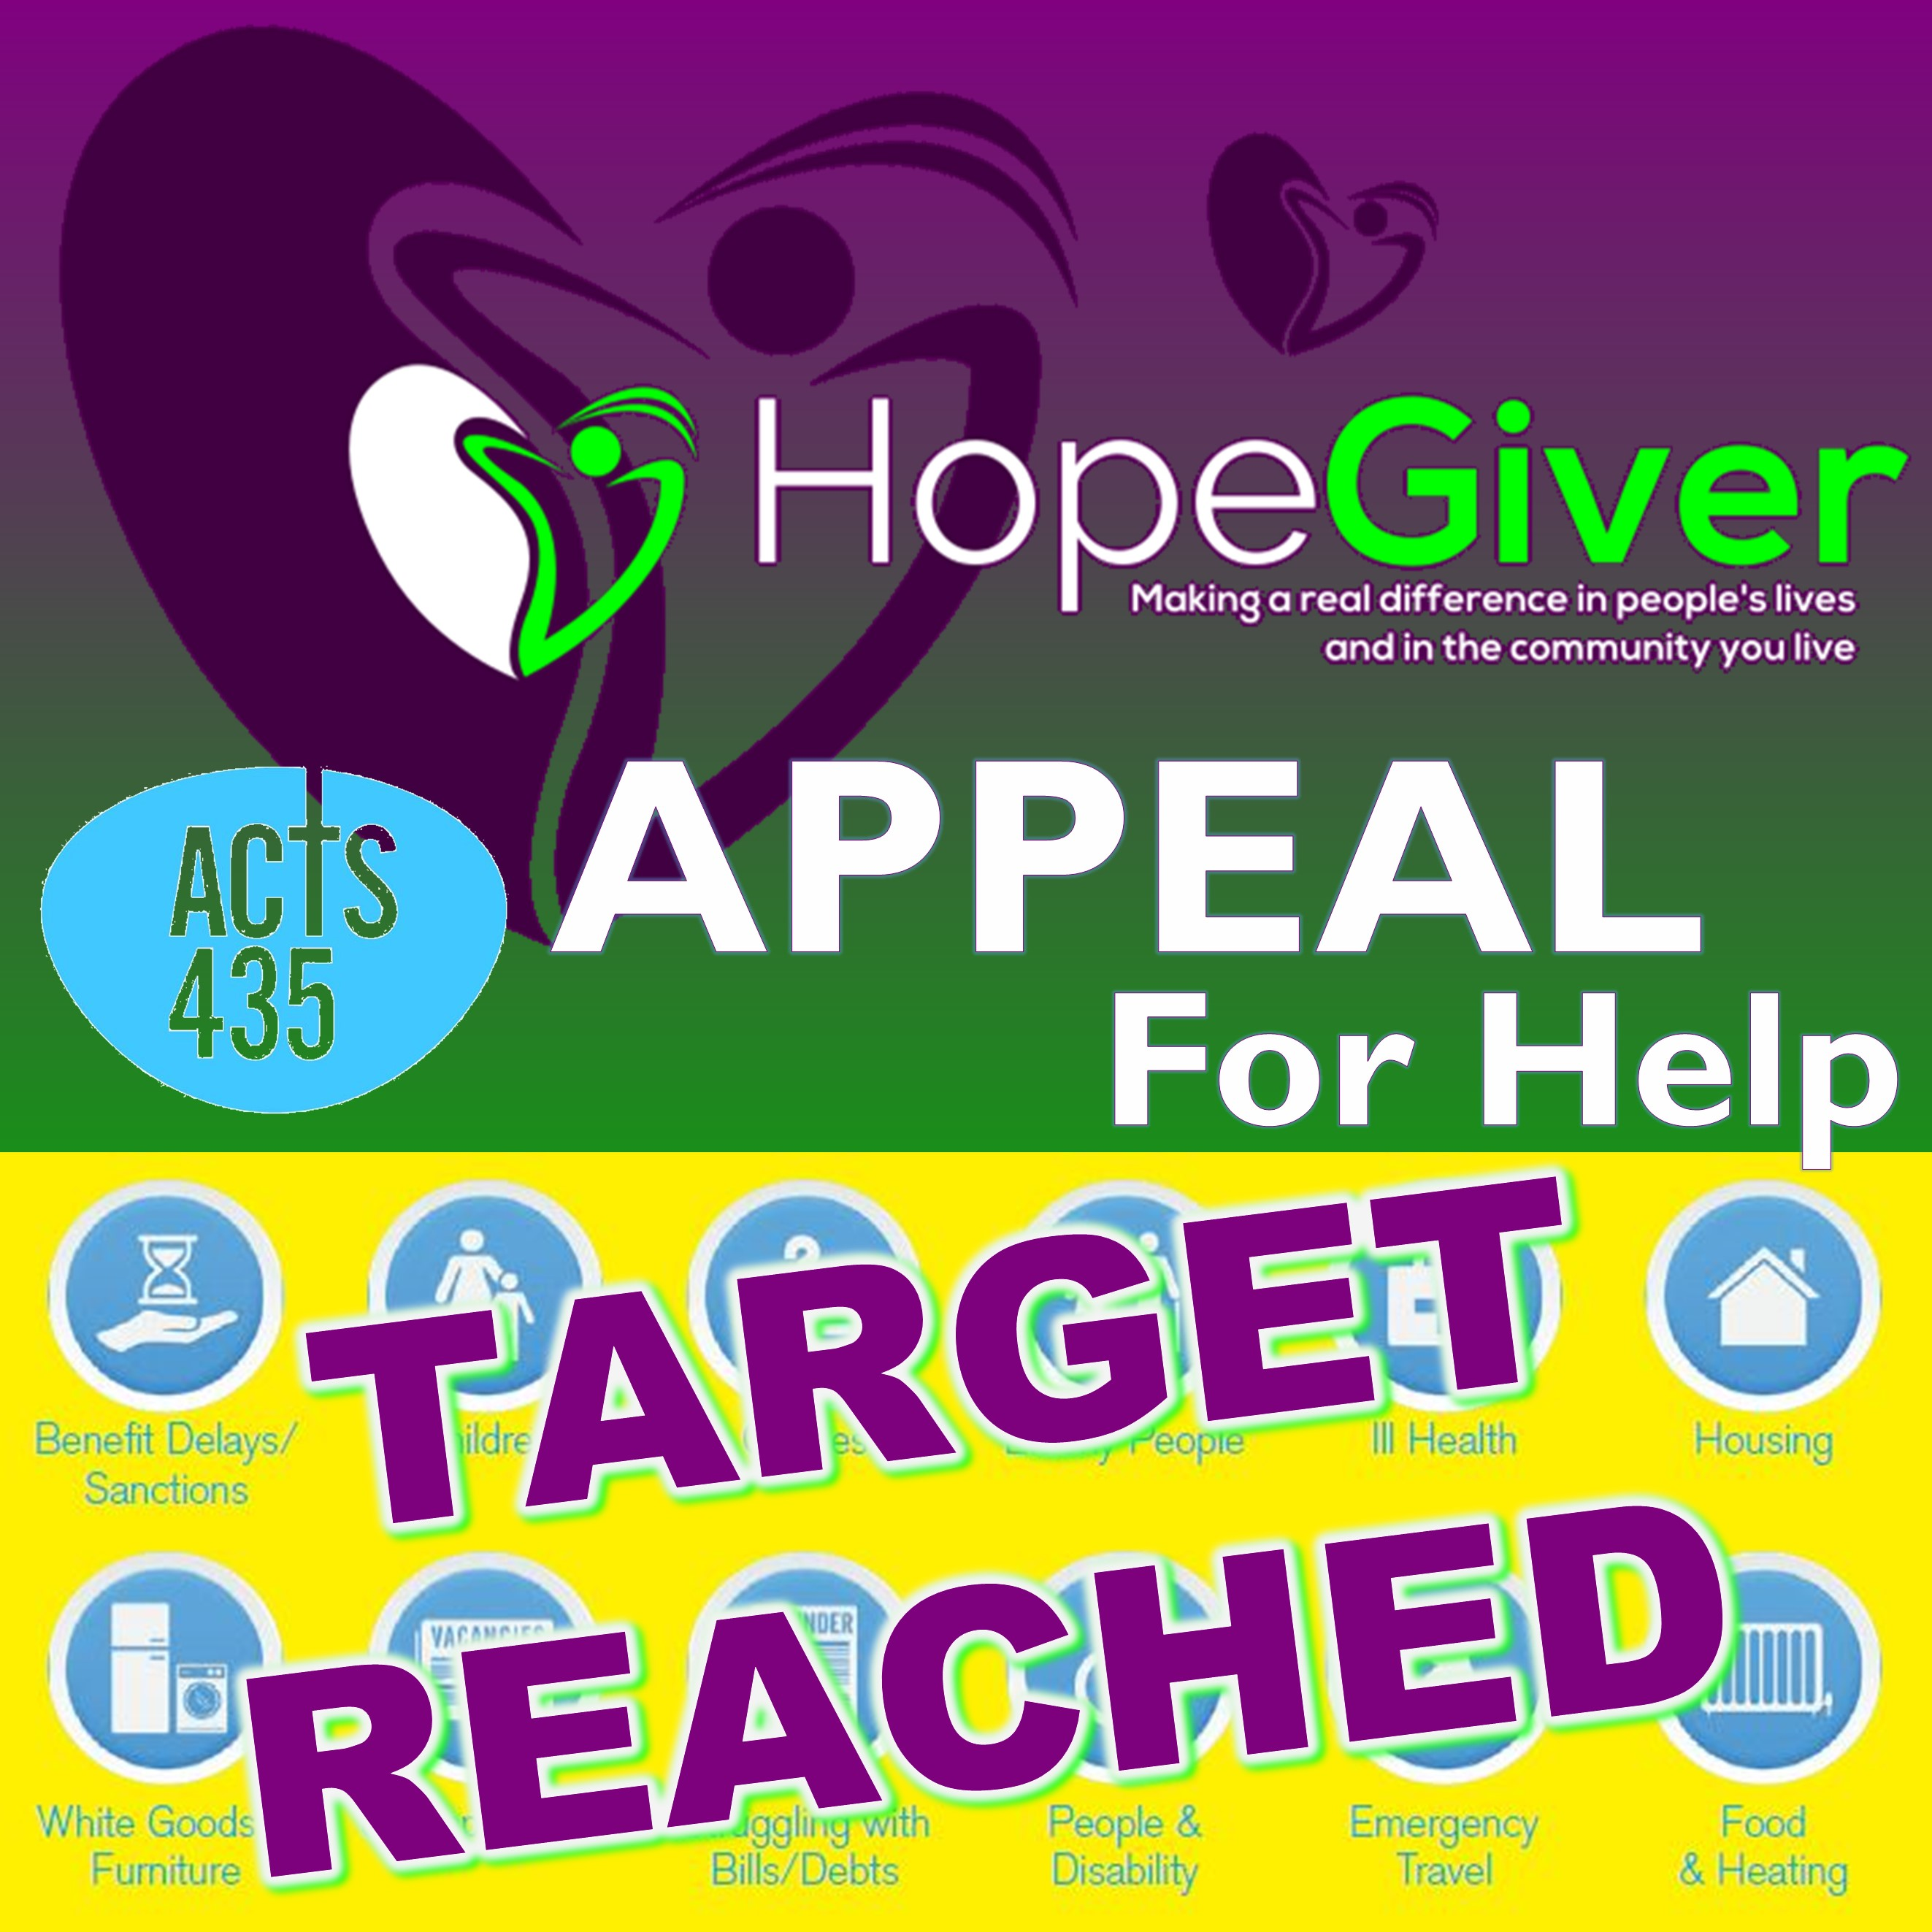 Appeal for Help - Target Reached